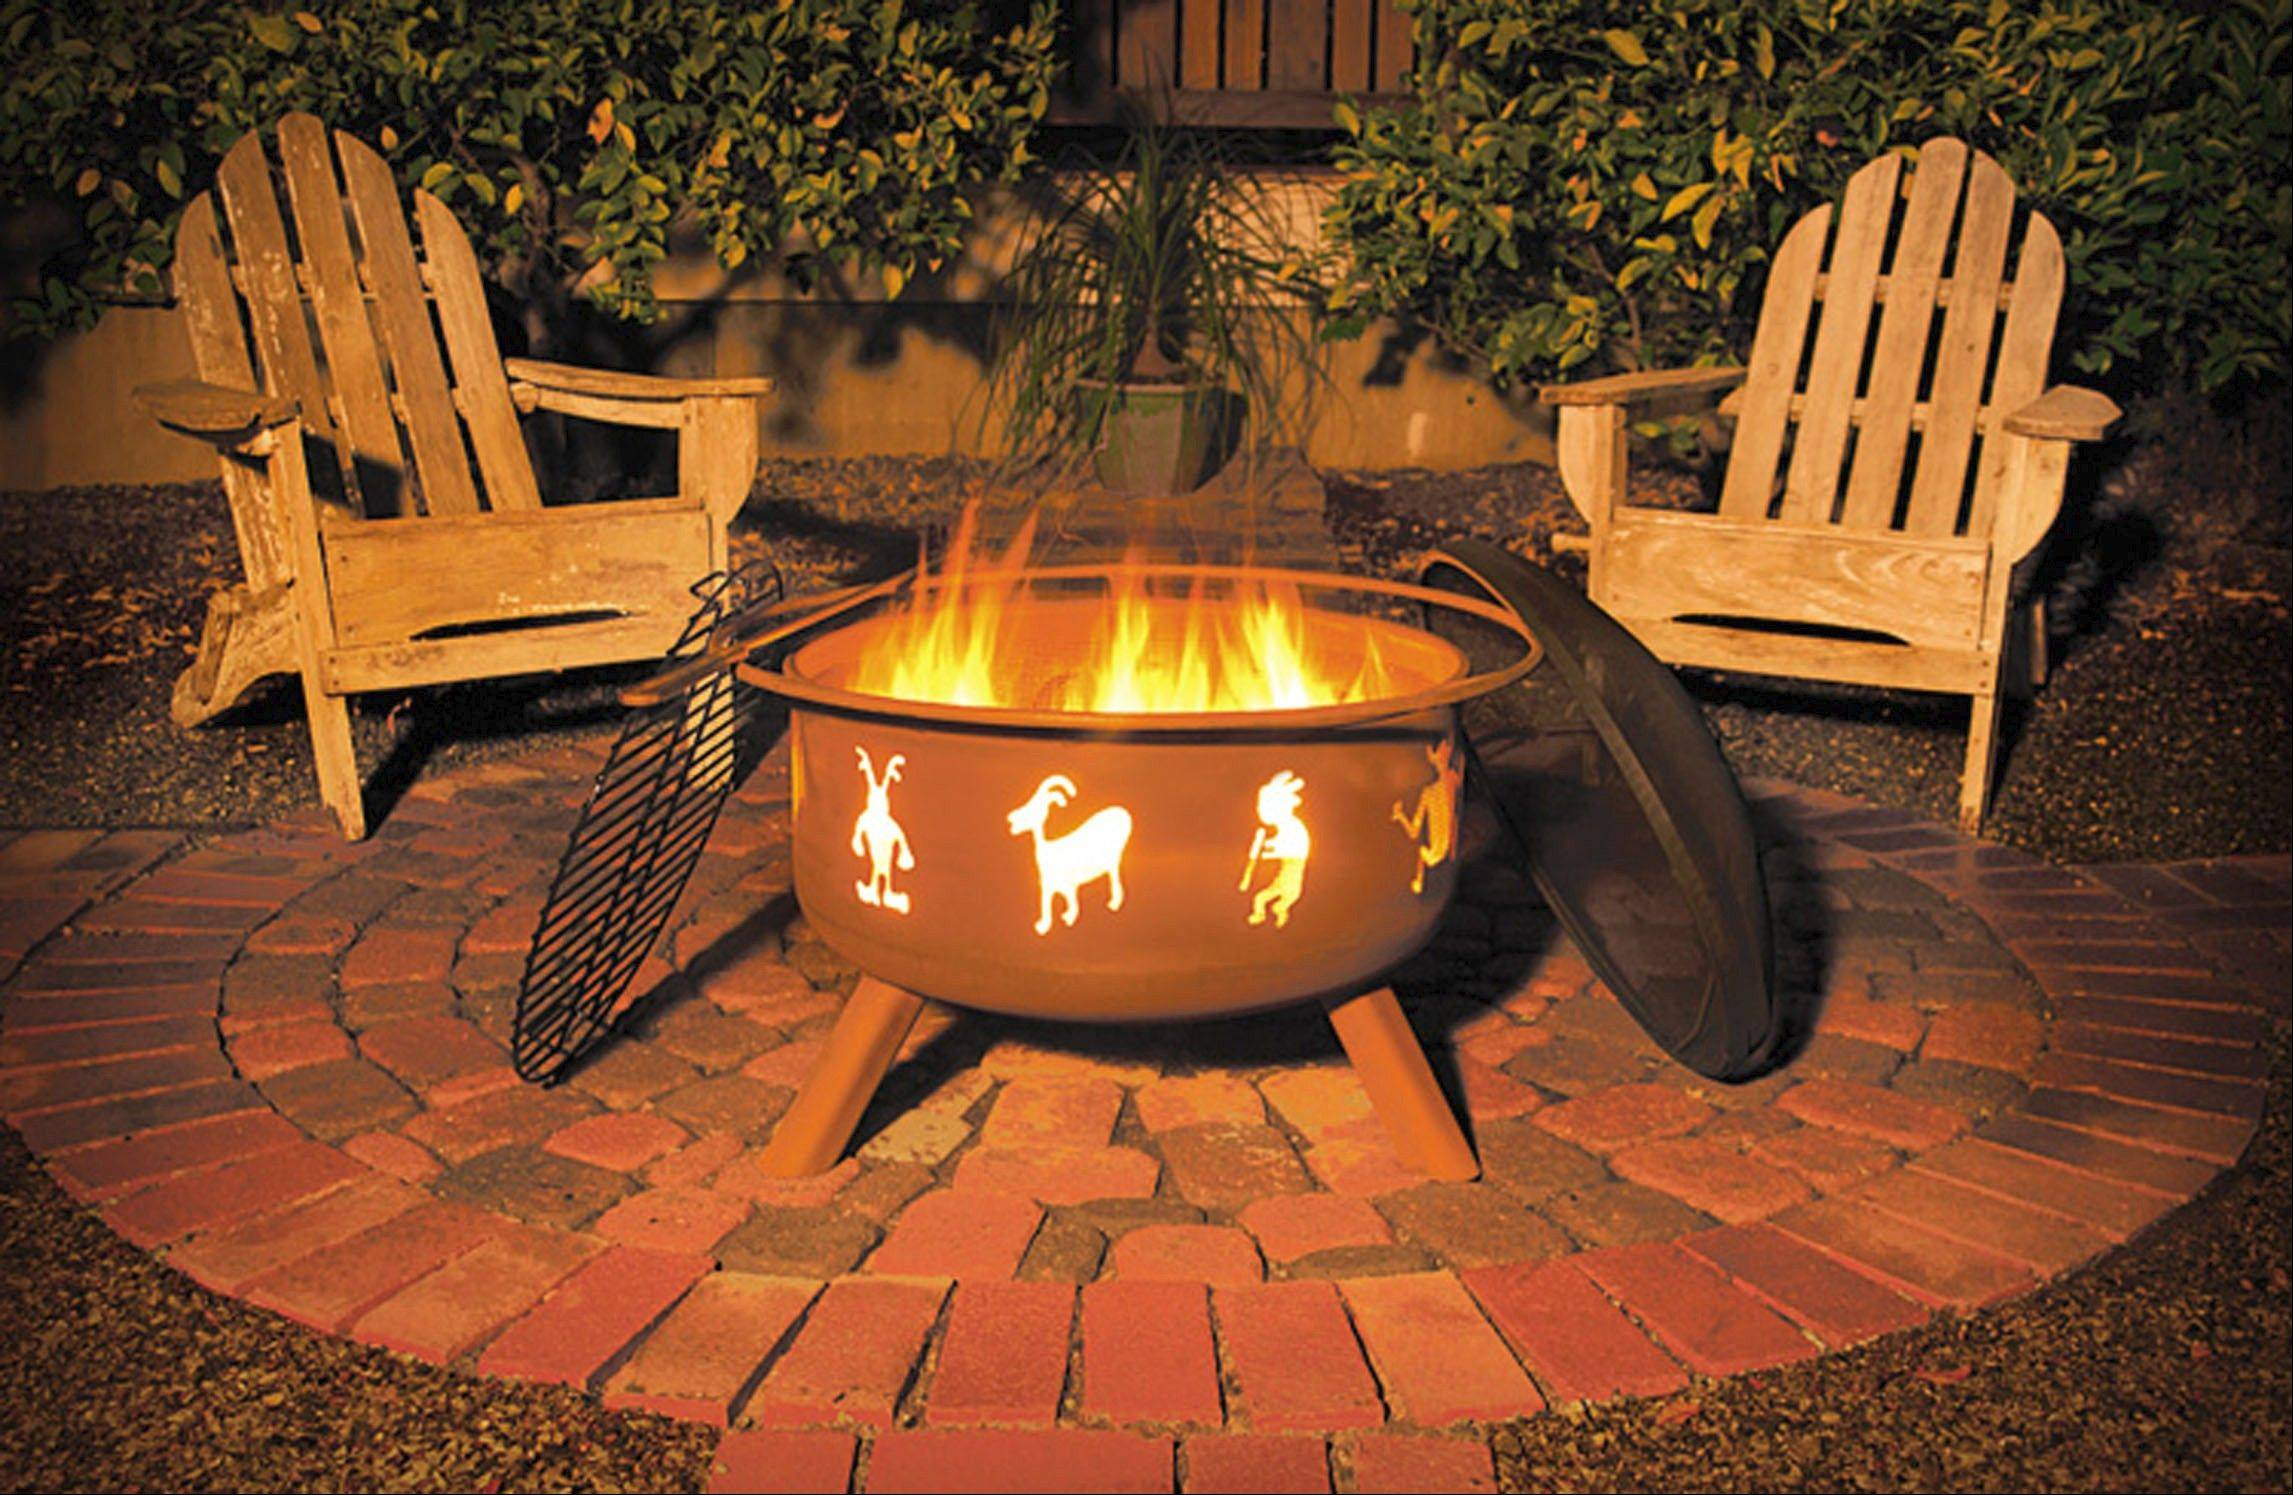 Sojoe firepits would be an economical substitute for a built-in firepit